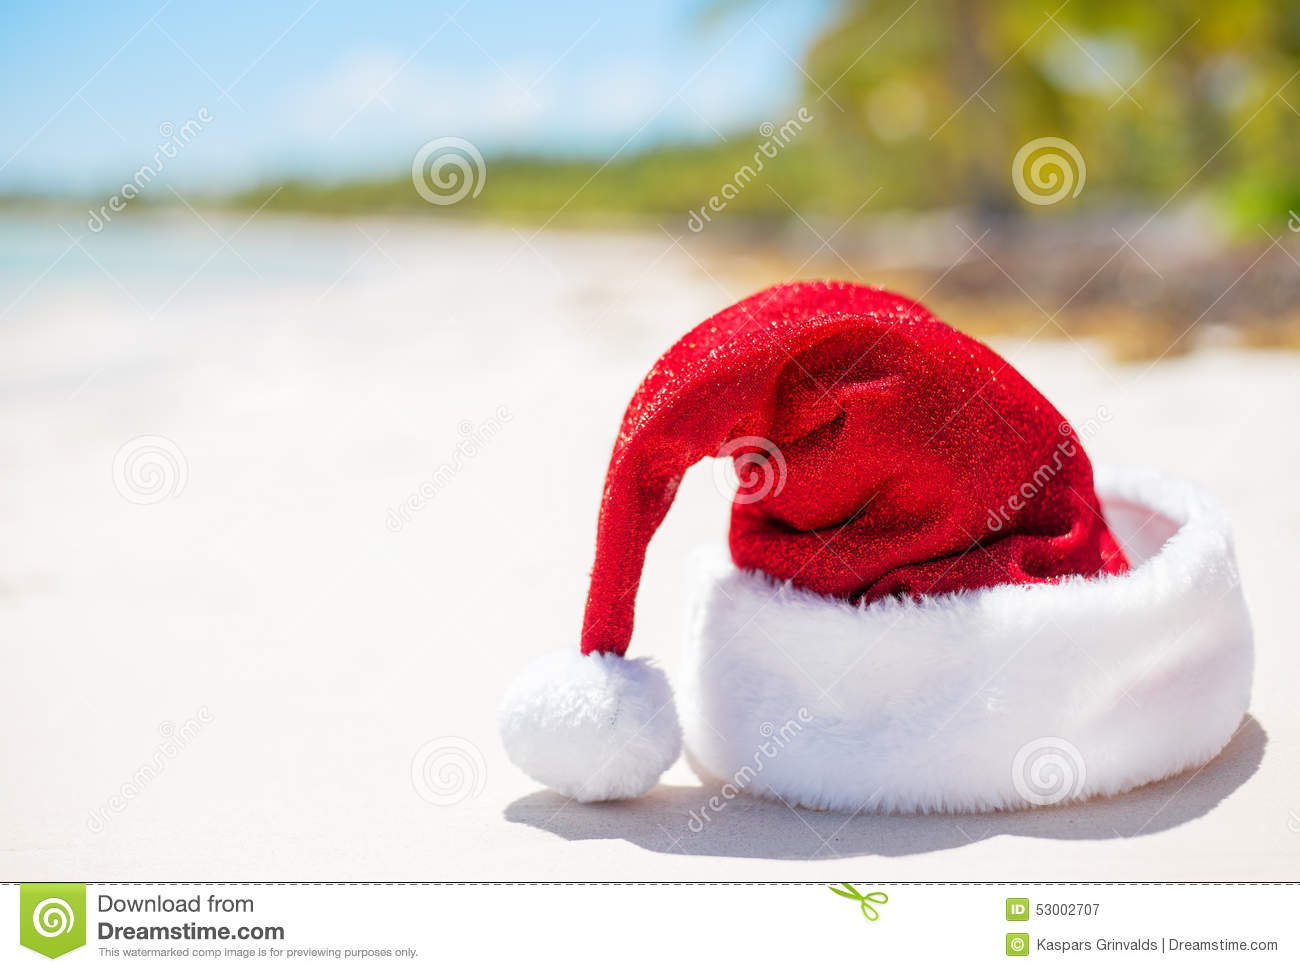 Red Santa Claus hat on beach, theme for Christmas vacation and travel